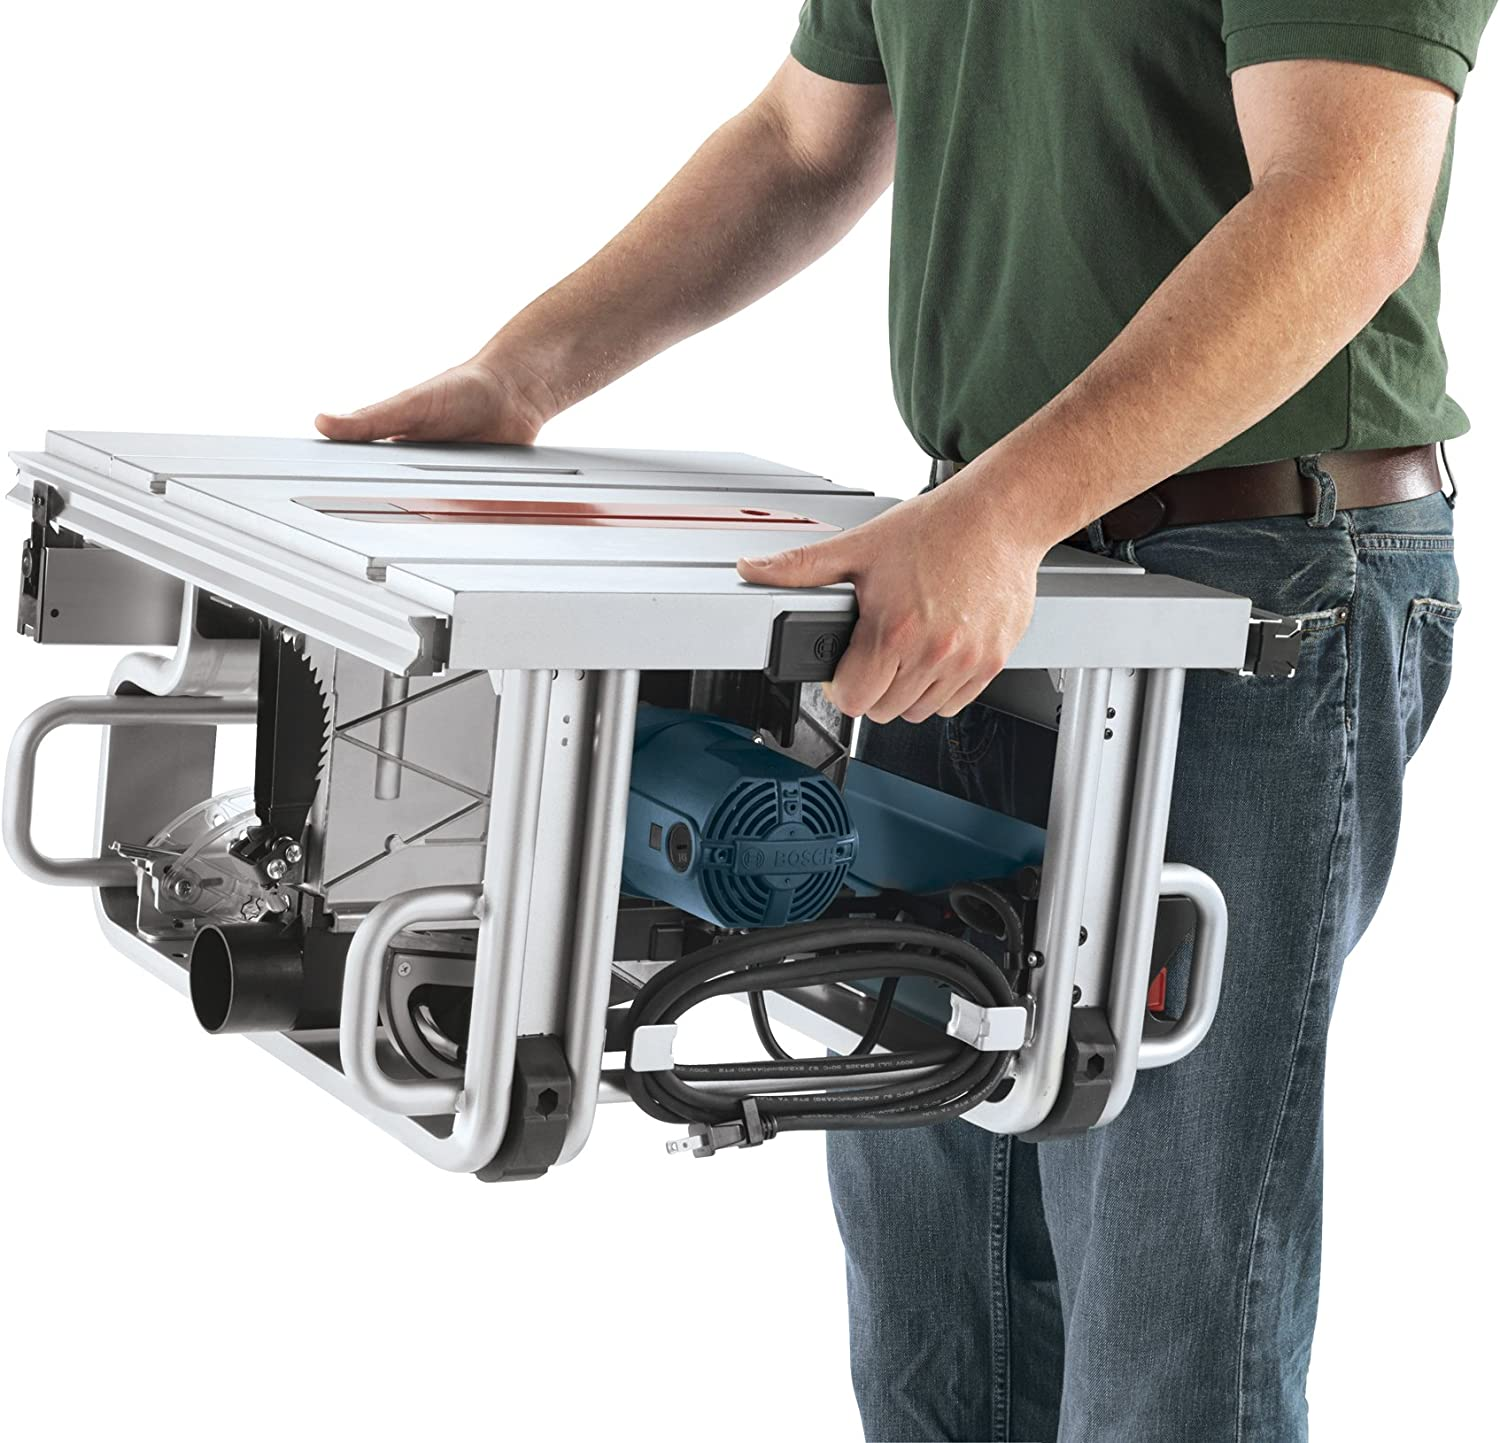 Bosch GTS1031 Table Saws product image 11